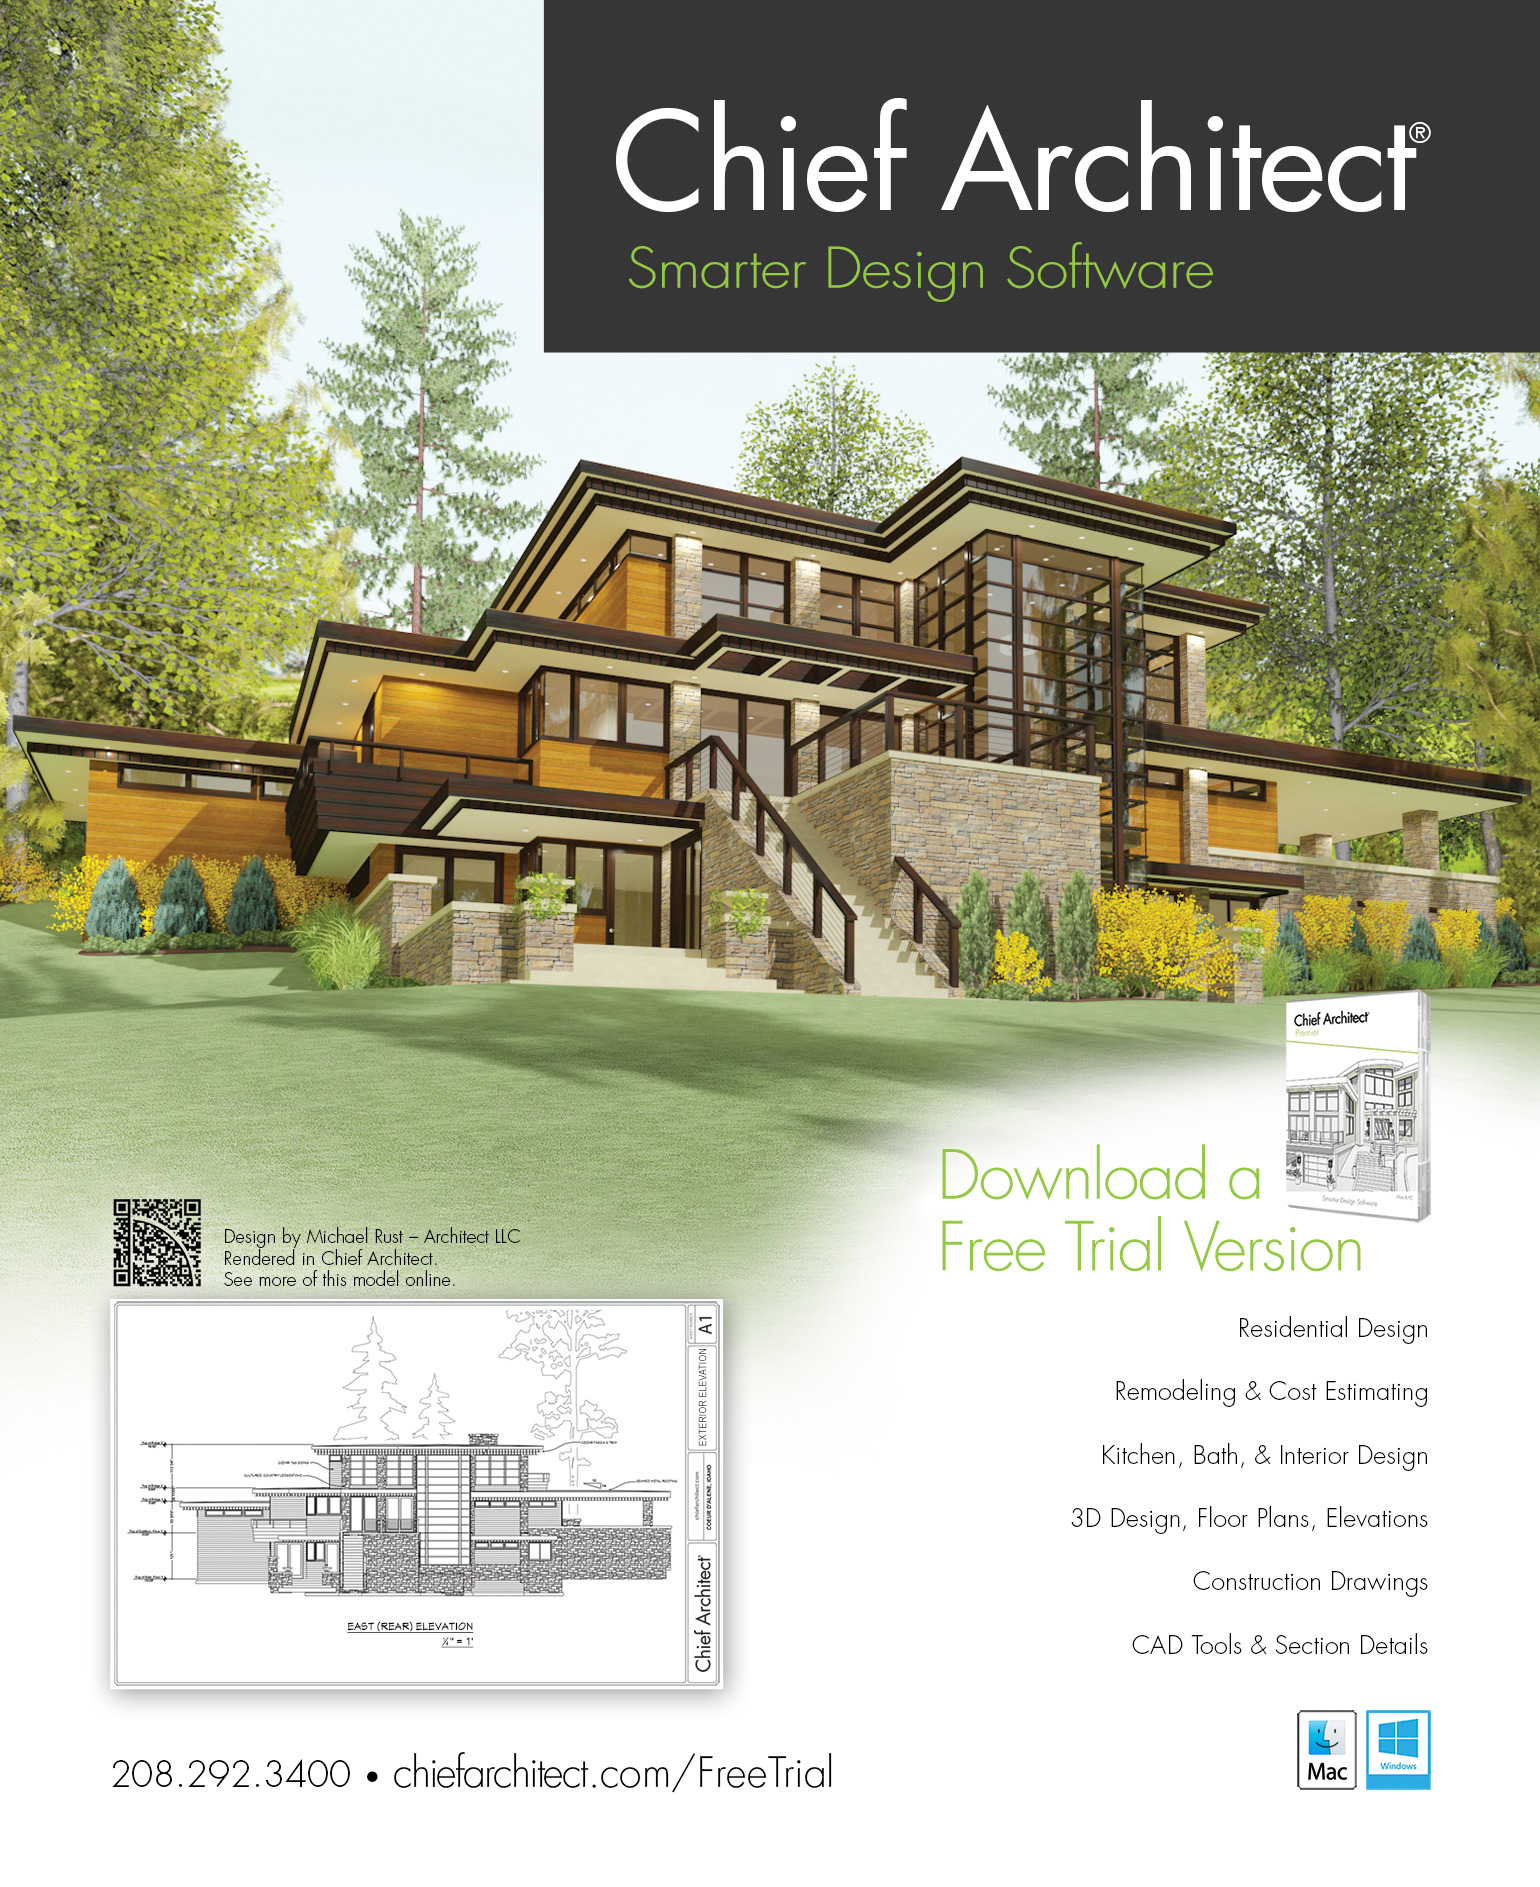 House Plans Free software New Chief Architect Home Design software Ad